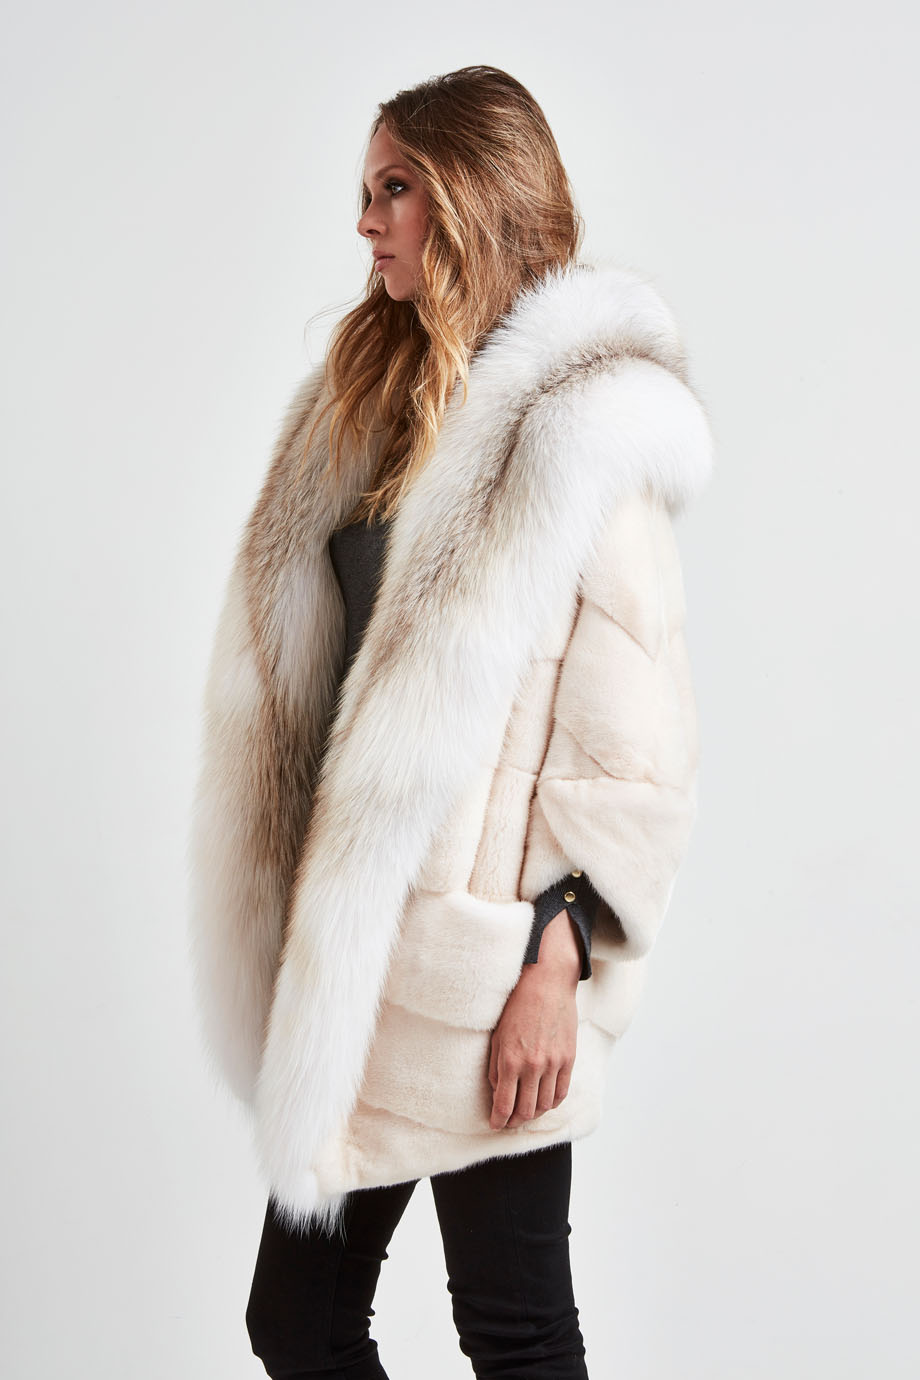 marilyn_mink_real_fur_coat_with_oversize_fox_collar_pearl_white_side_CARA MILA.jpg